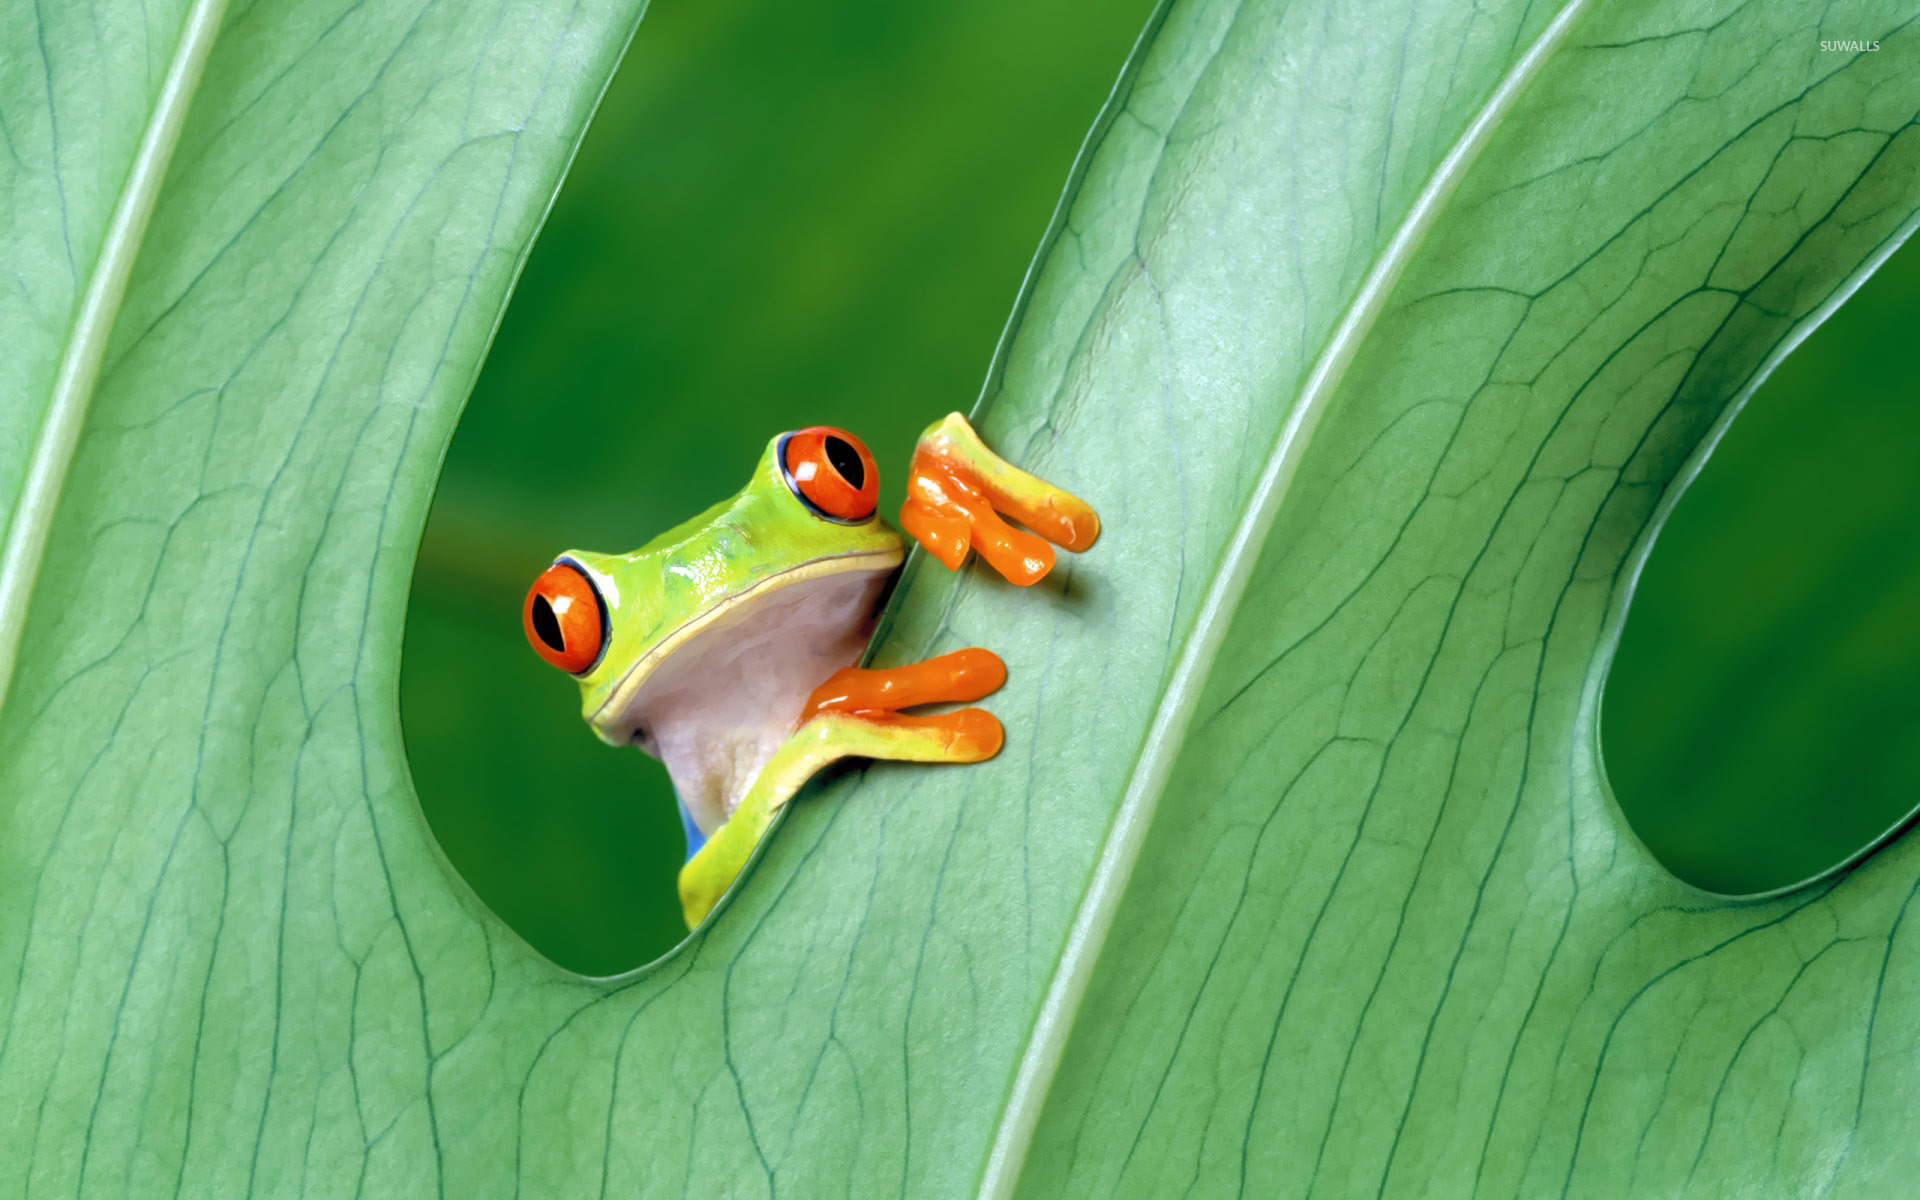 Tree frog wallpaper wallpapersafari - Frog cartoon wallpaper ...